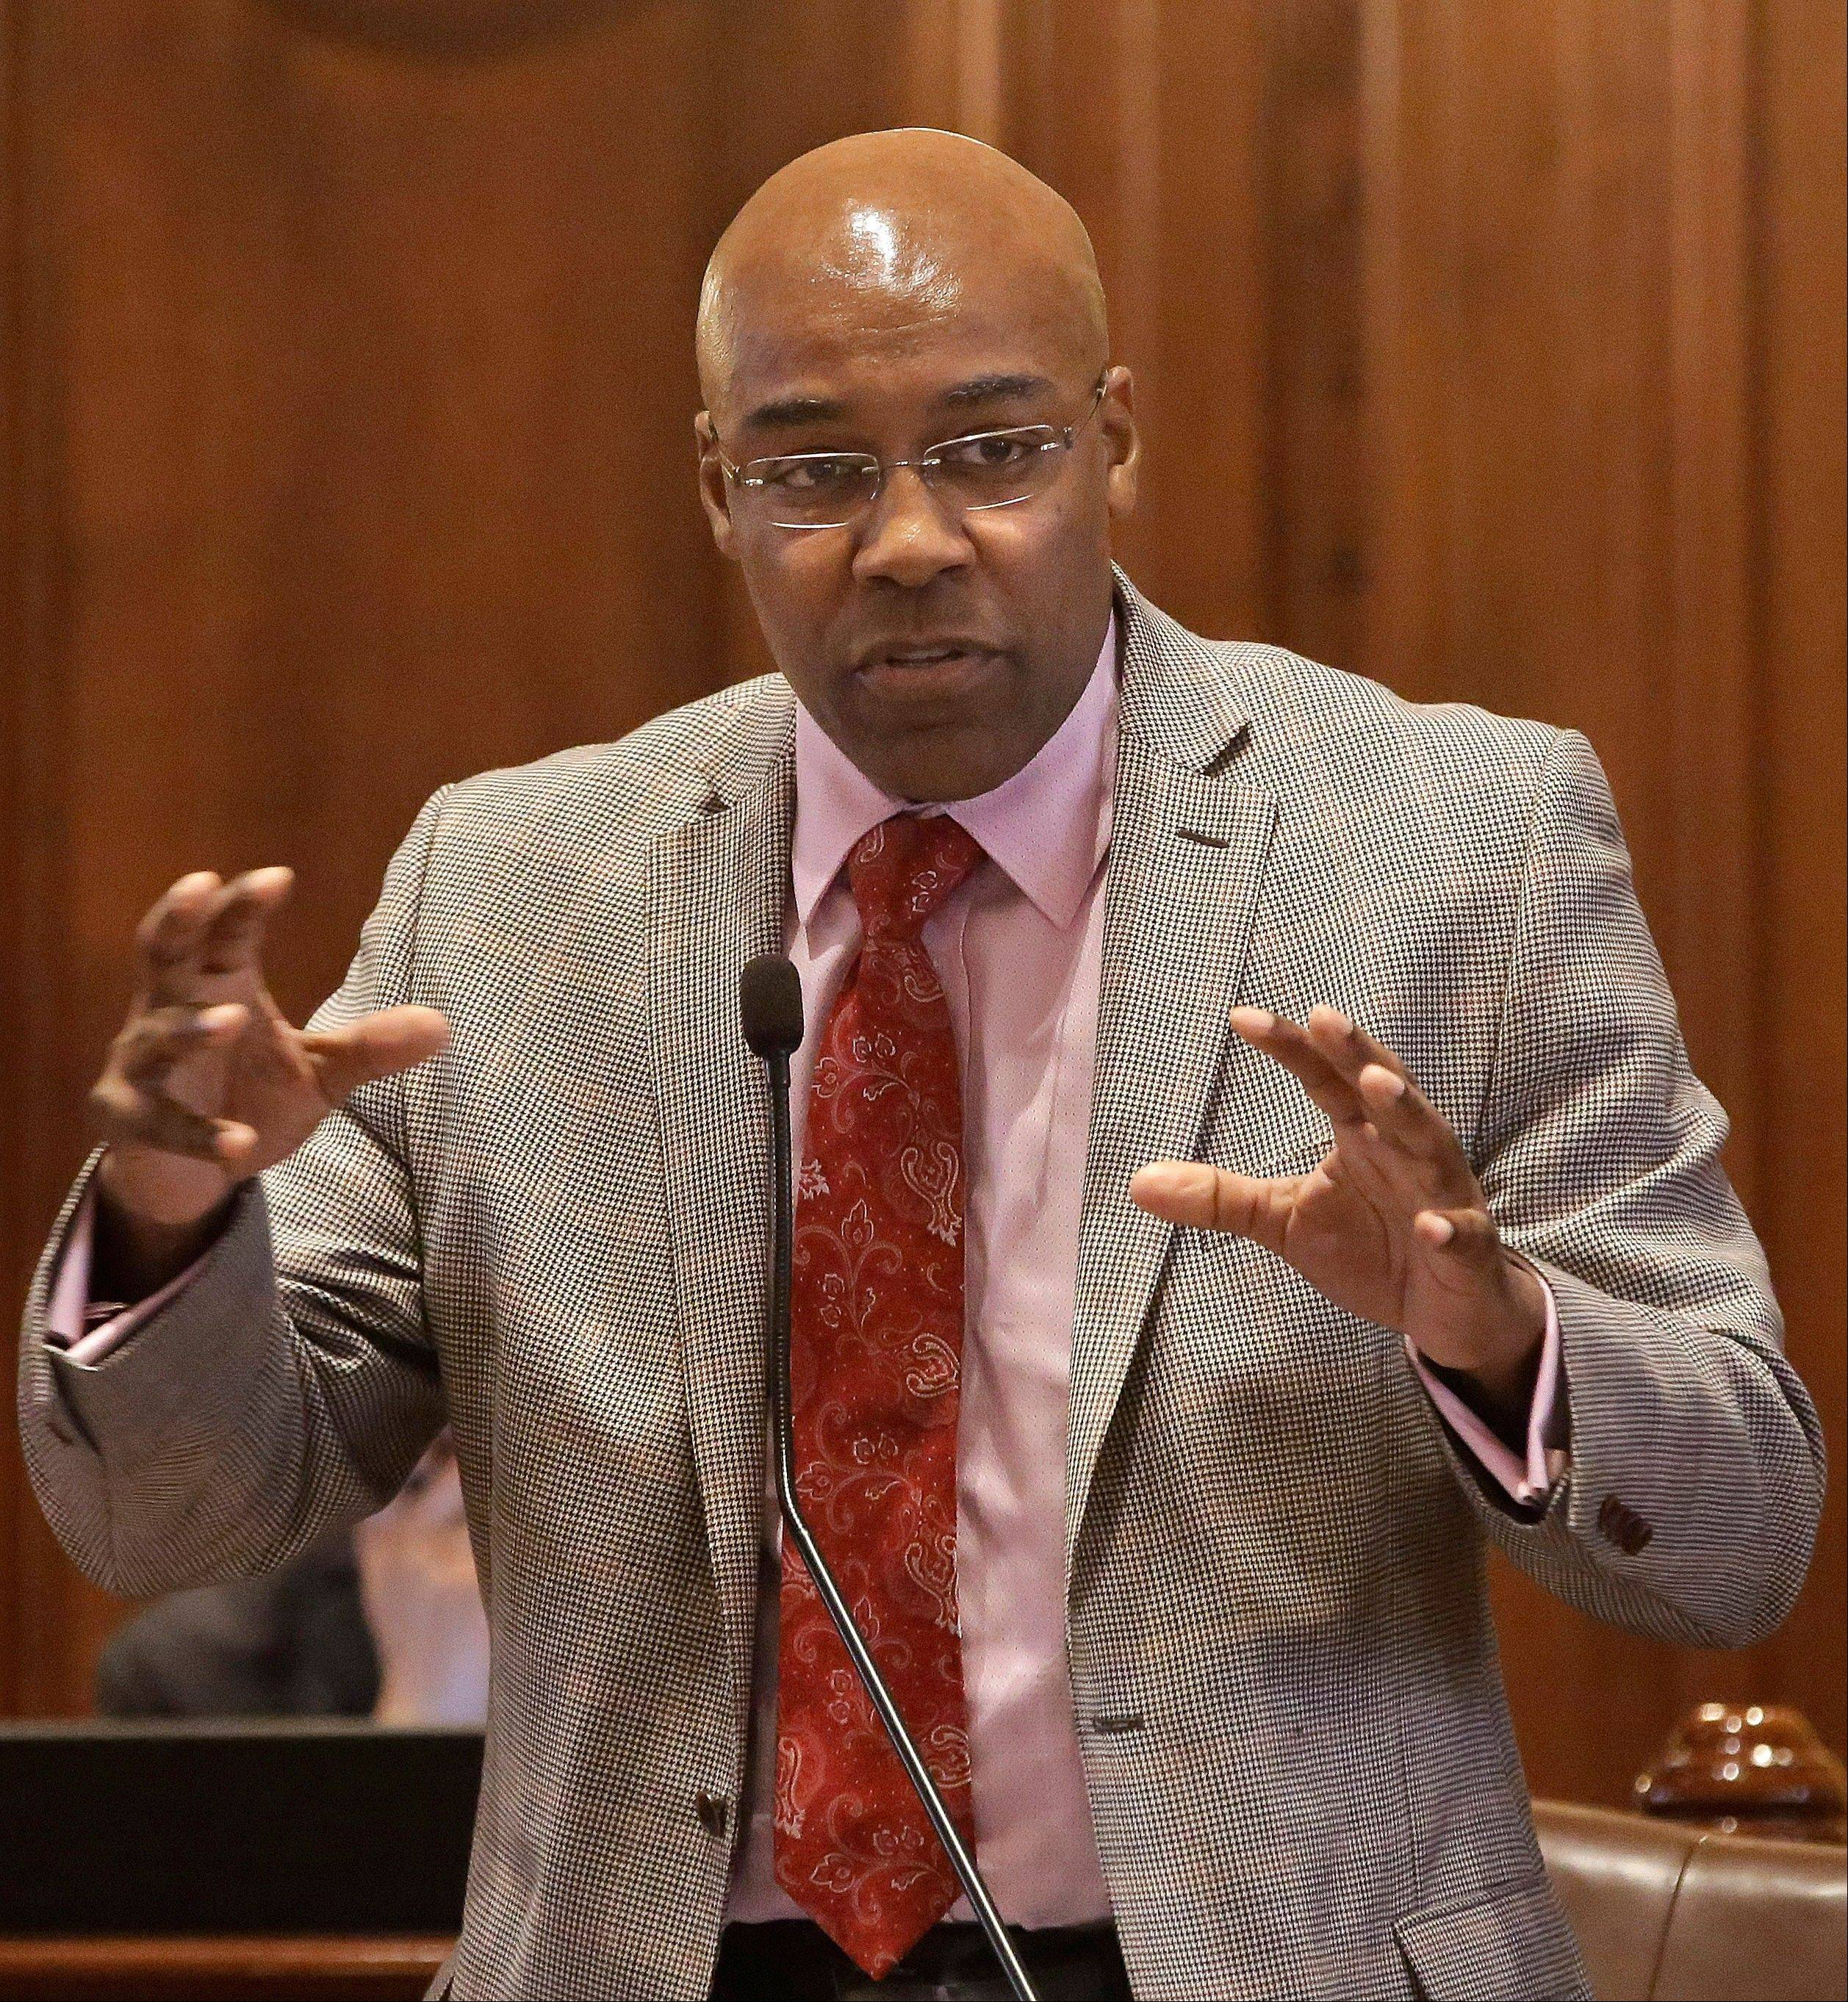 State Sen. Kwame Raoul�s concealed carry legislation includes a statewide gun prohibition in schools, liquor stores, stadiums, amusement parks and more. Illinois has until June 9 to follow a federal court order to enact a law allowing concealed guns in public.